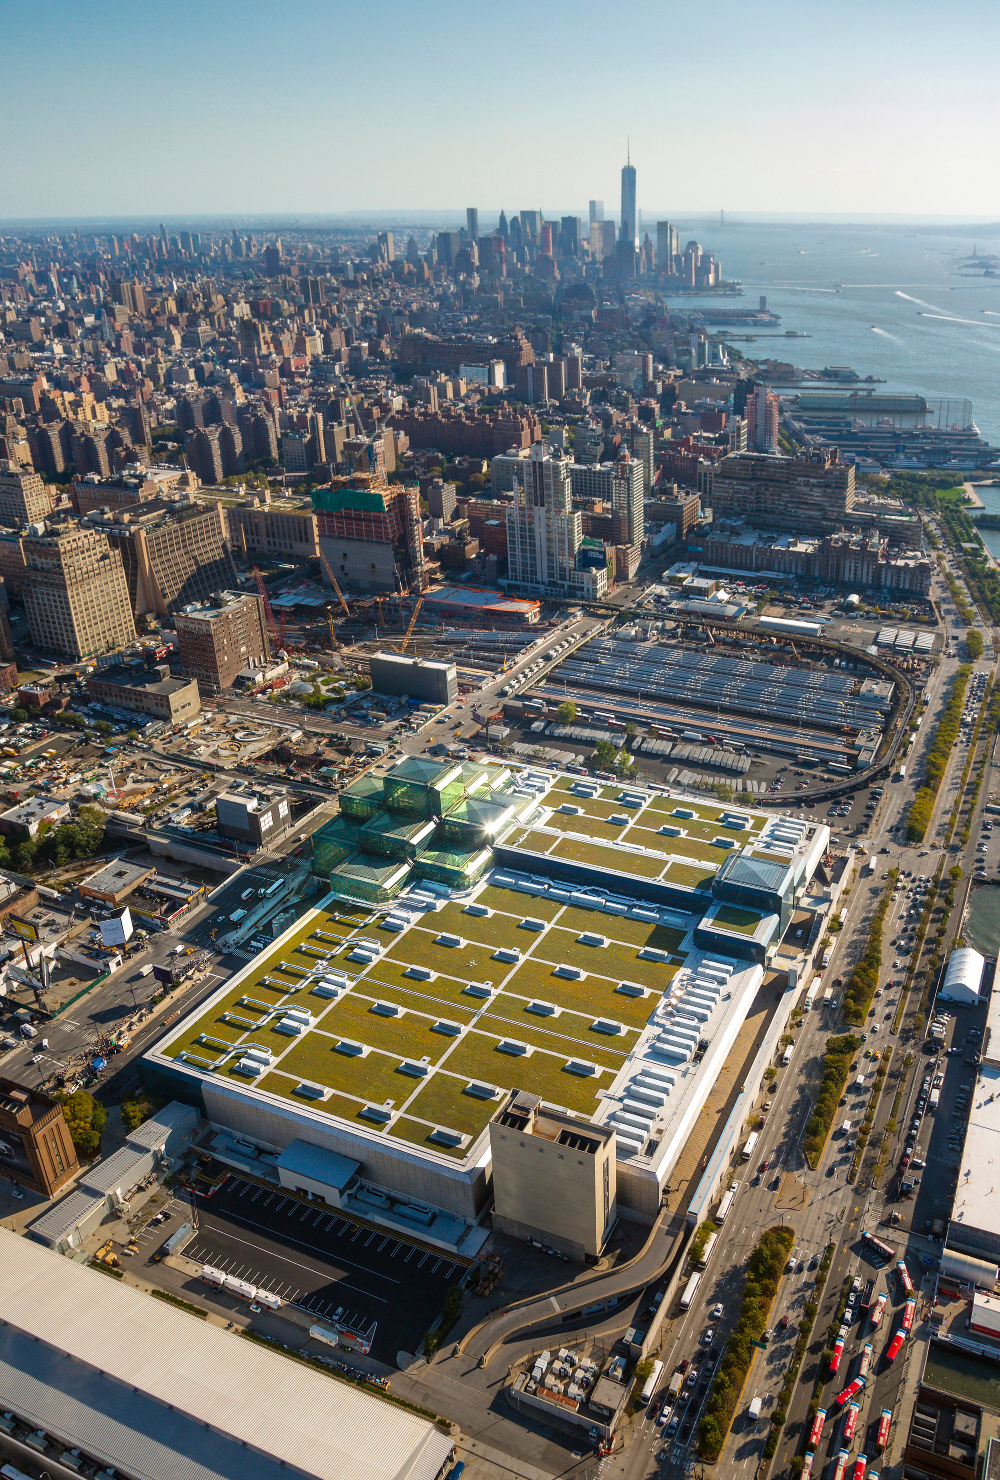 Javits Center New York Google Search Green Roof Roof Futuristic